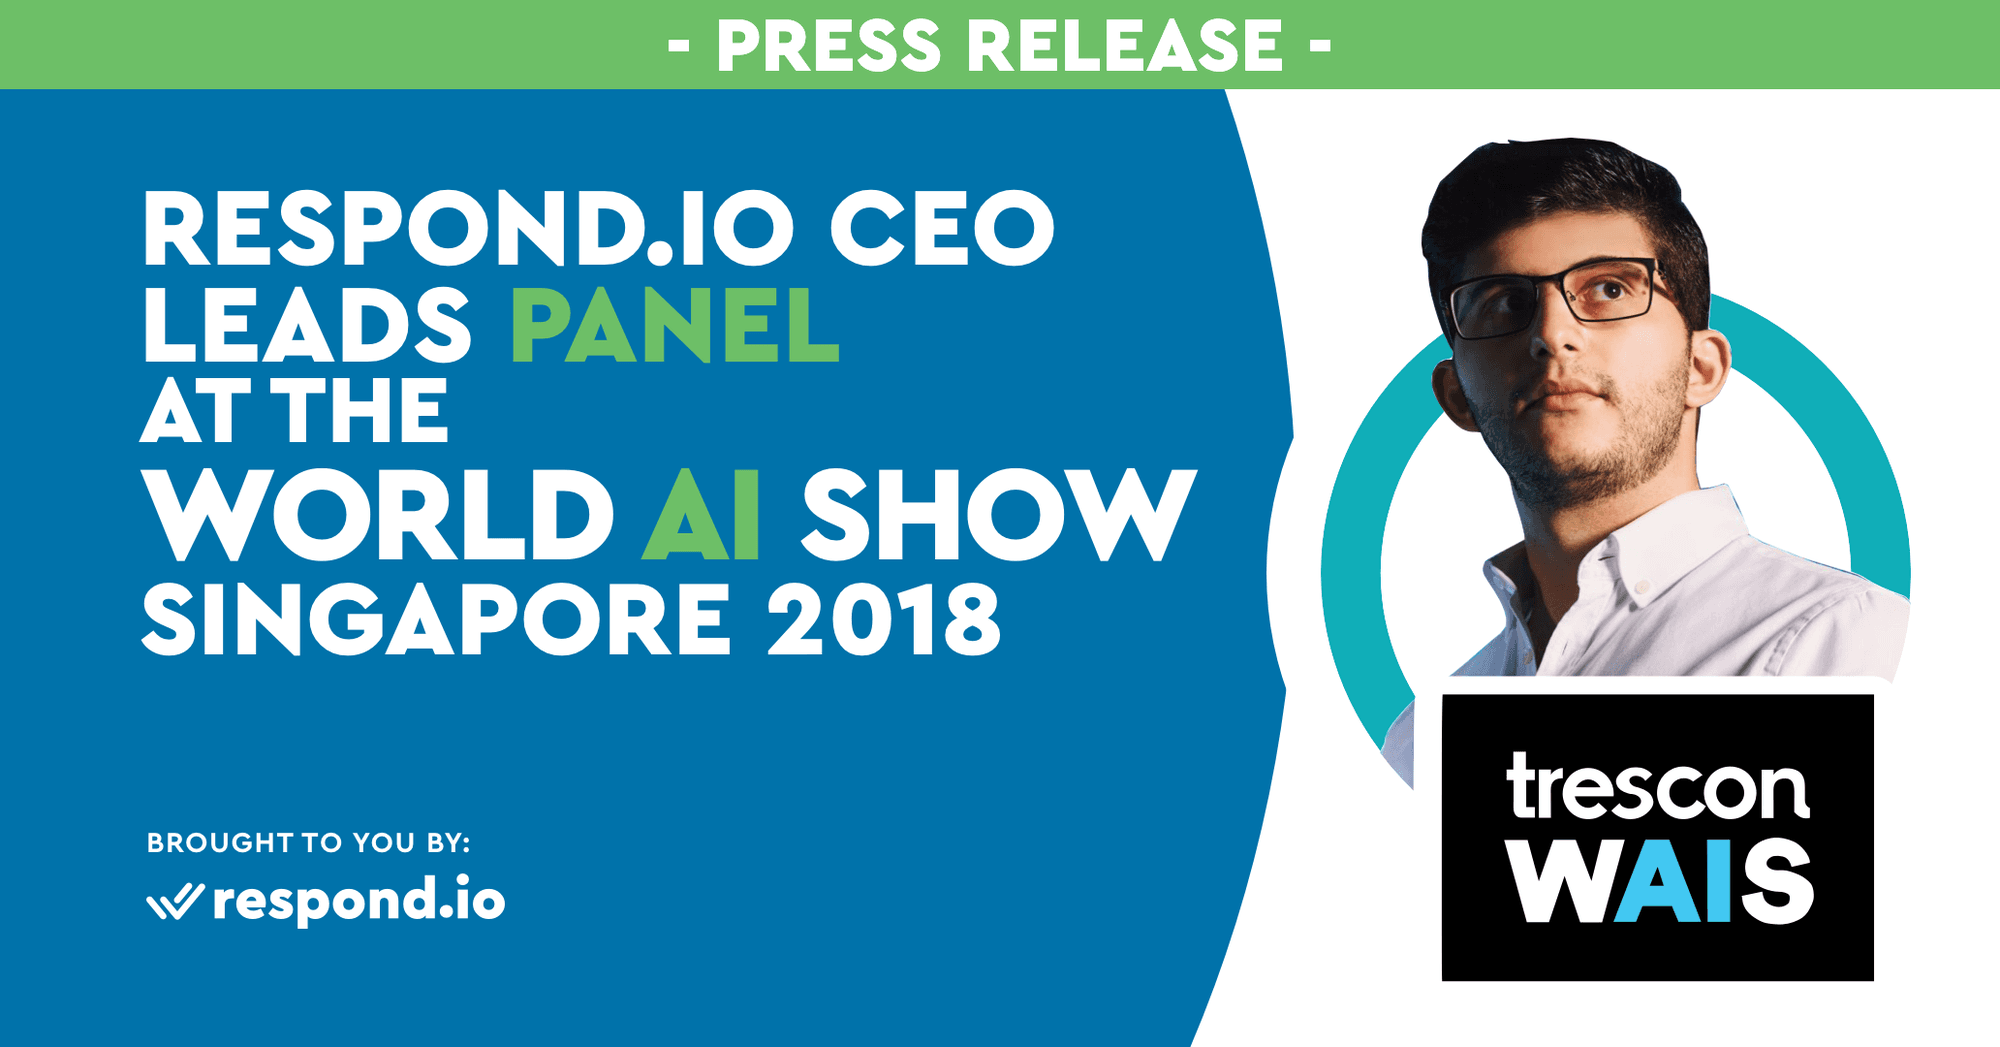 Respond.io CEO Leads Panel at the World AI Show Singapore 2018